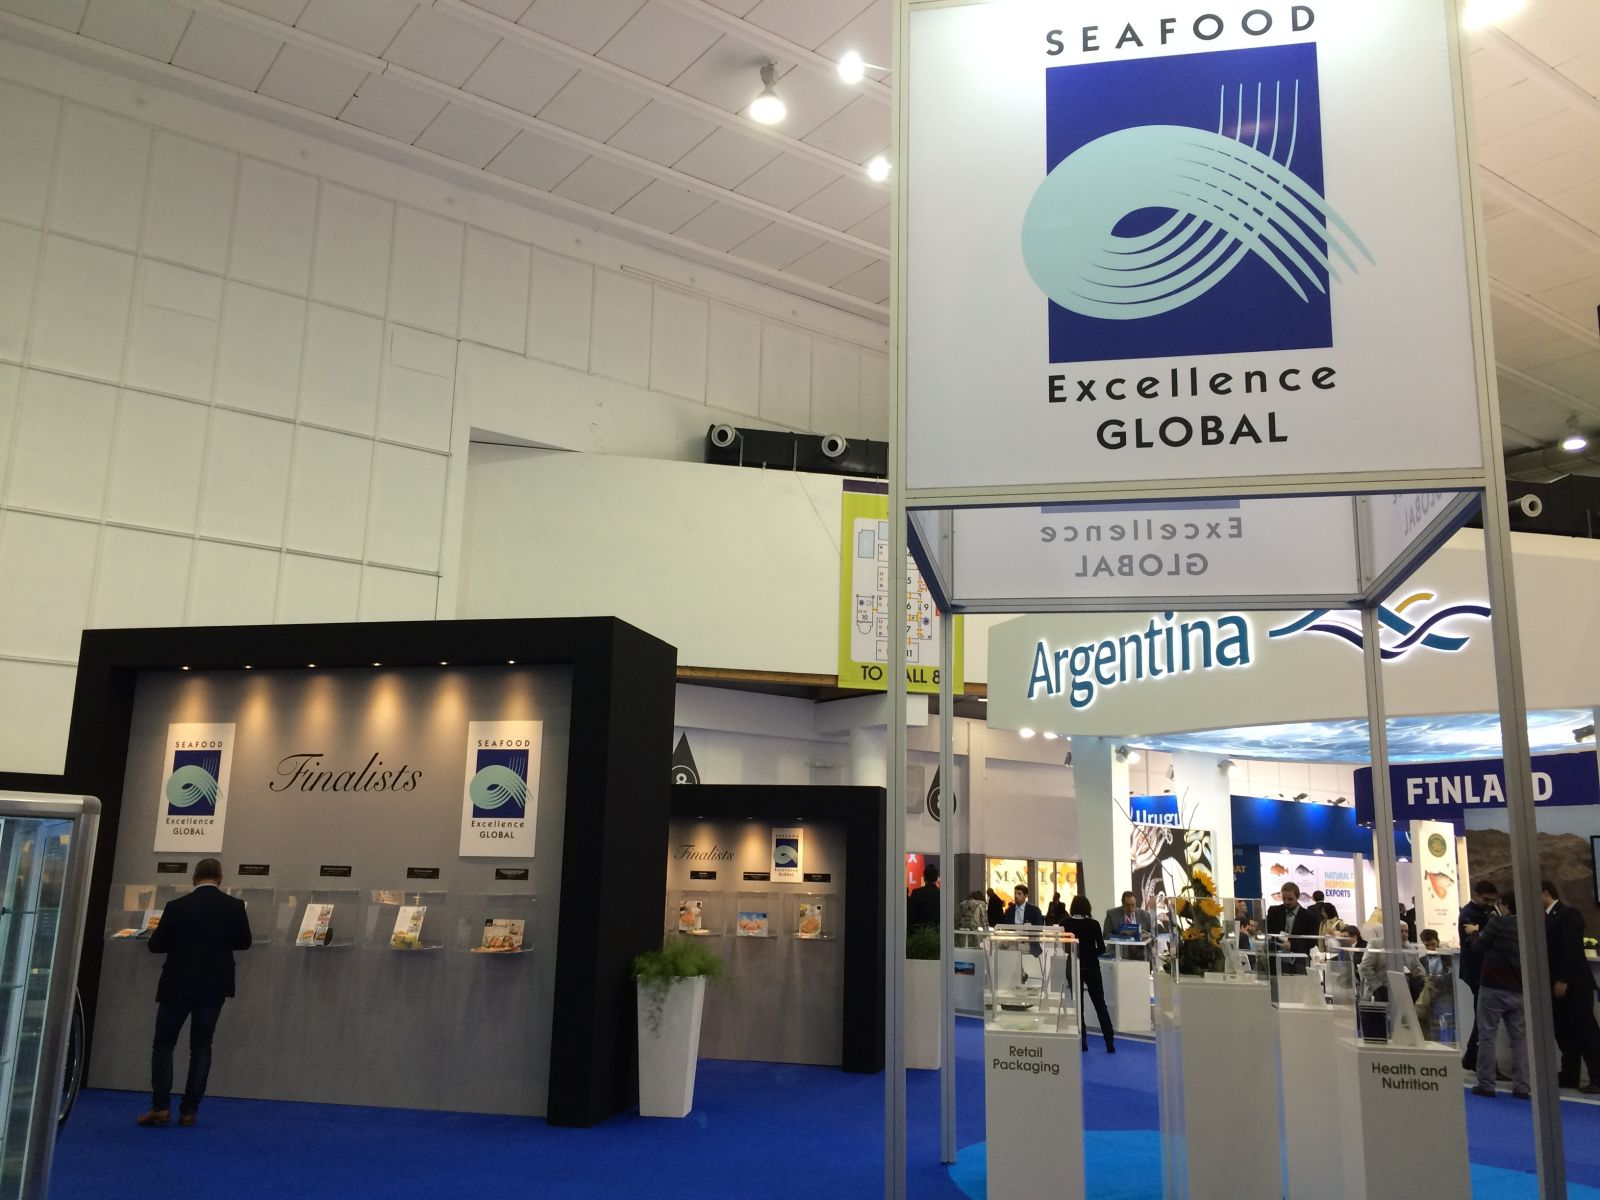 The Seafood Excellence Global 2016 Exhibit in the Patio